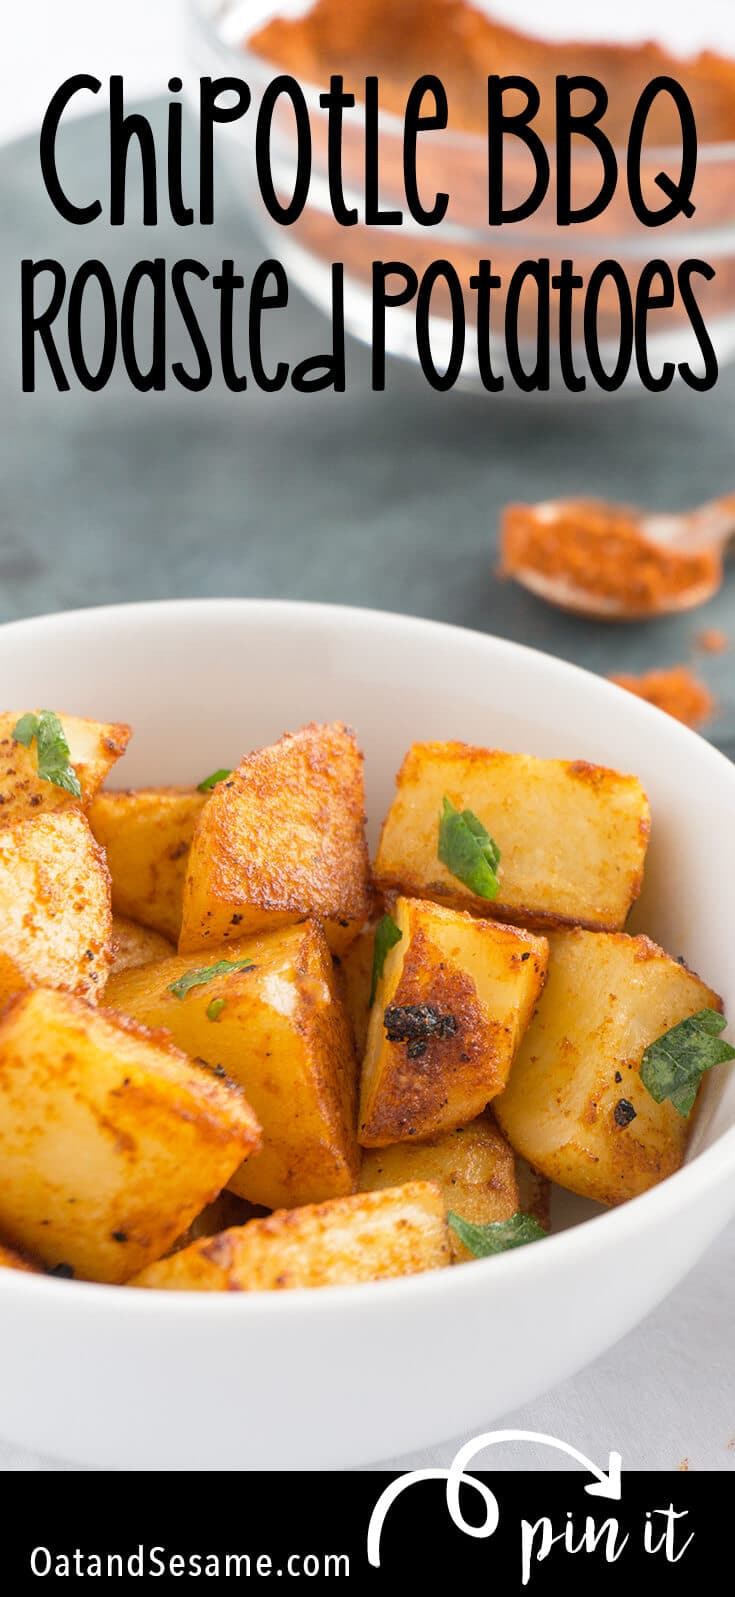 roasted potatoes in a bowl with seasoning